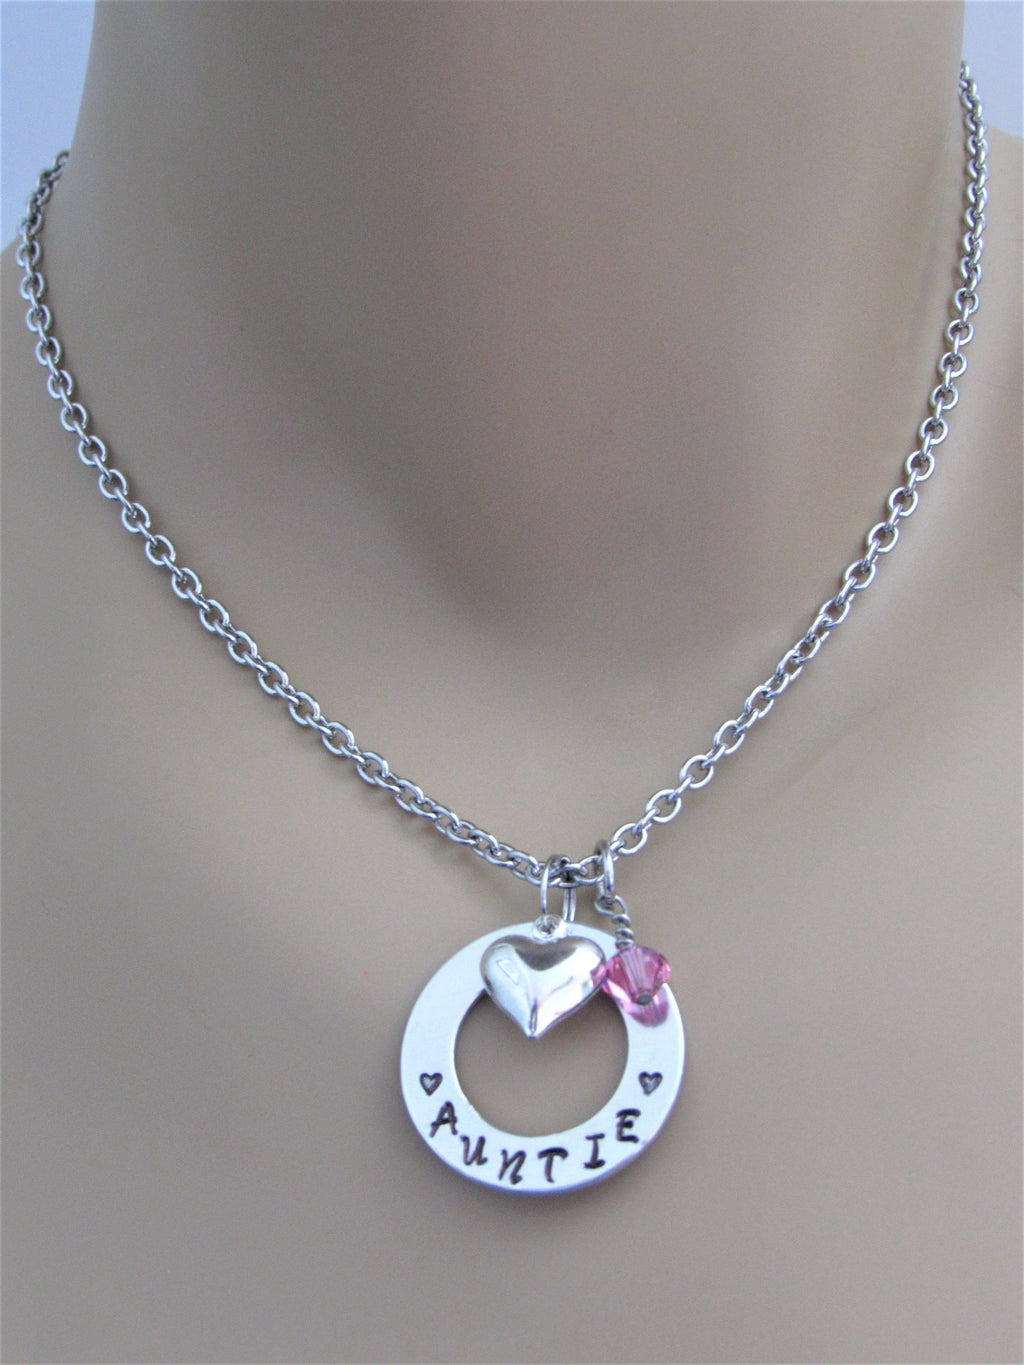 Auntie Hand Stamped Necklace w/ Swarovski Birthstone Bead and Silver Heart Charm